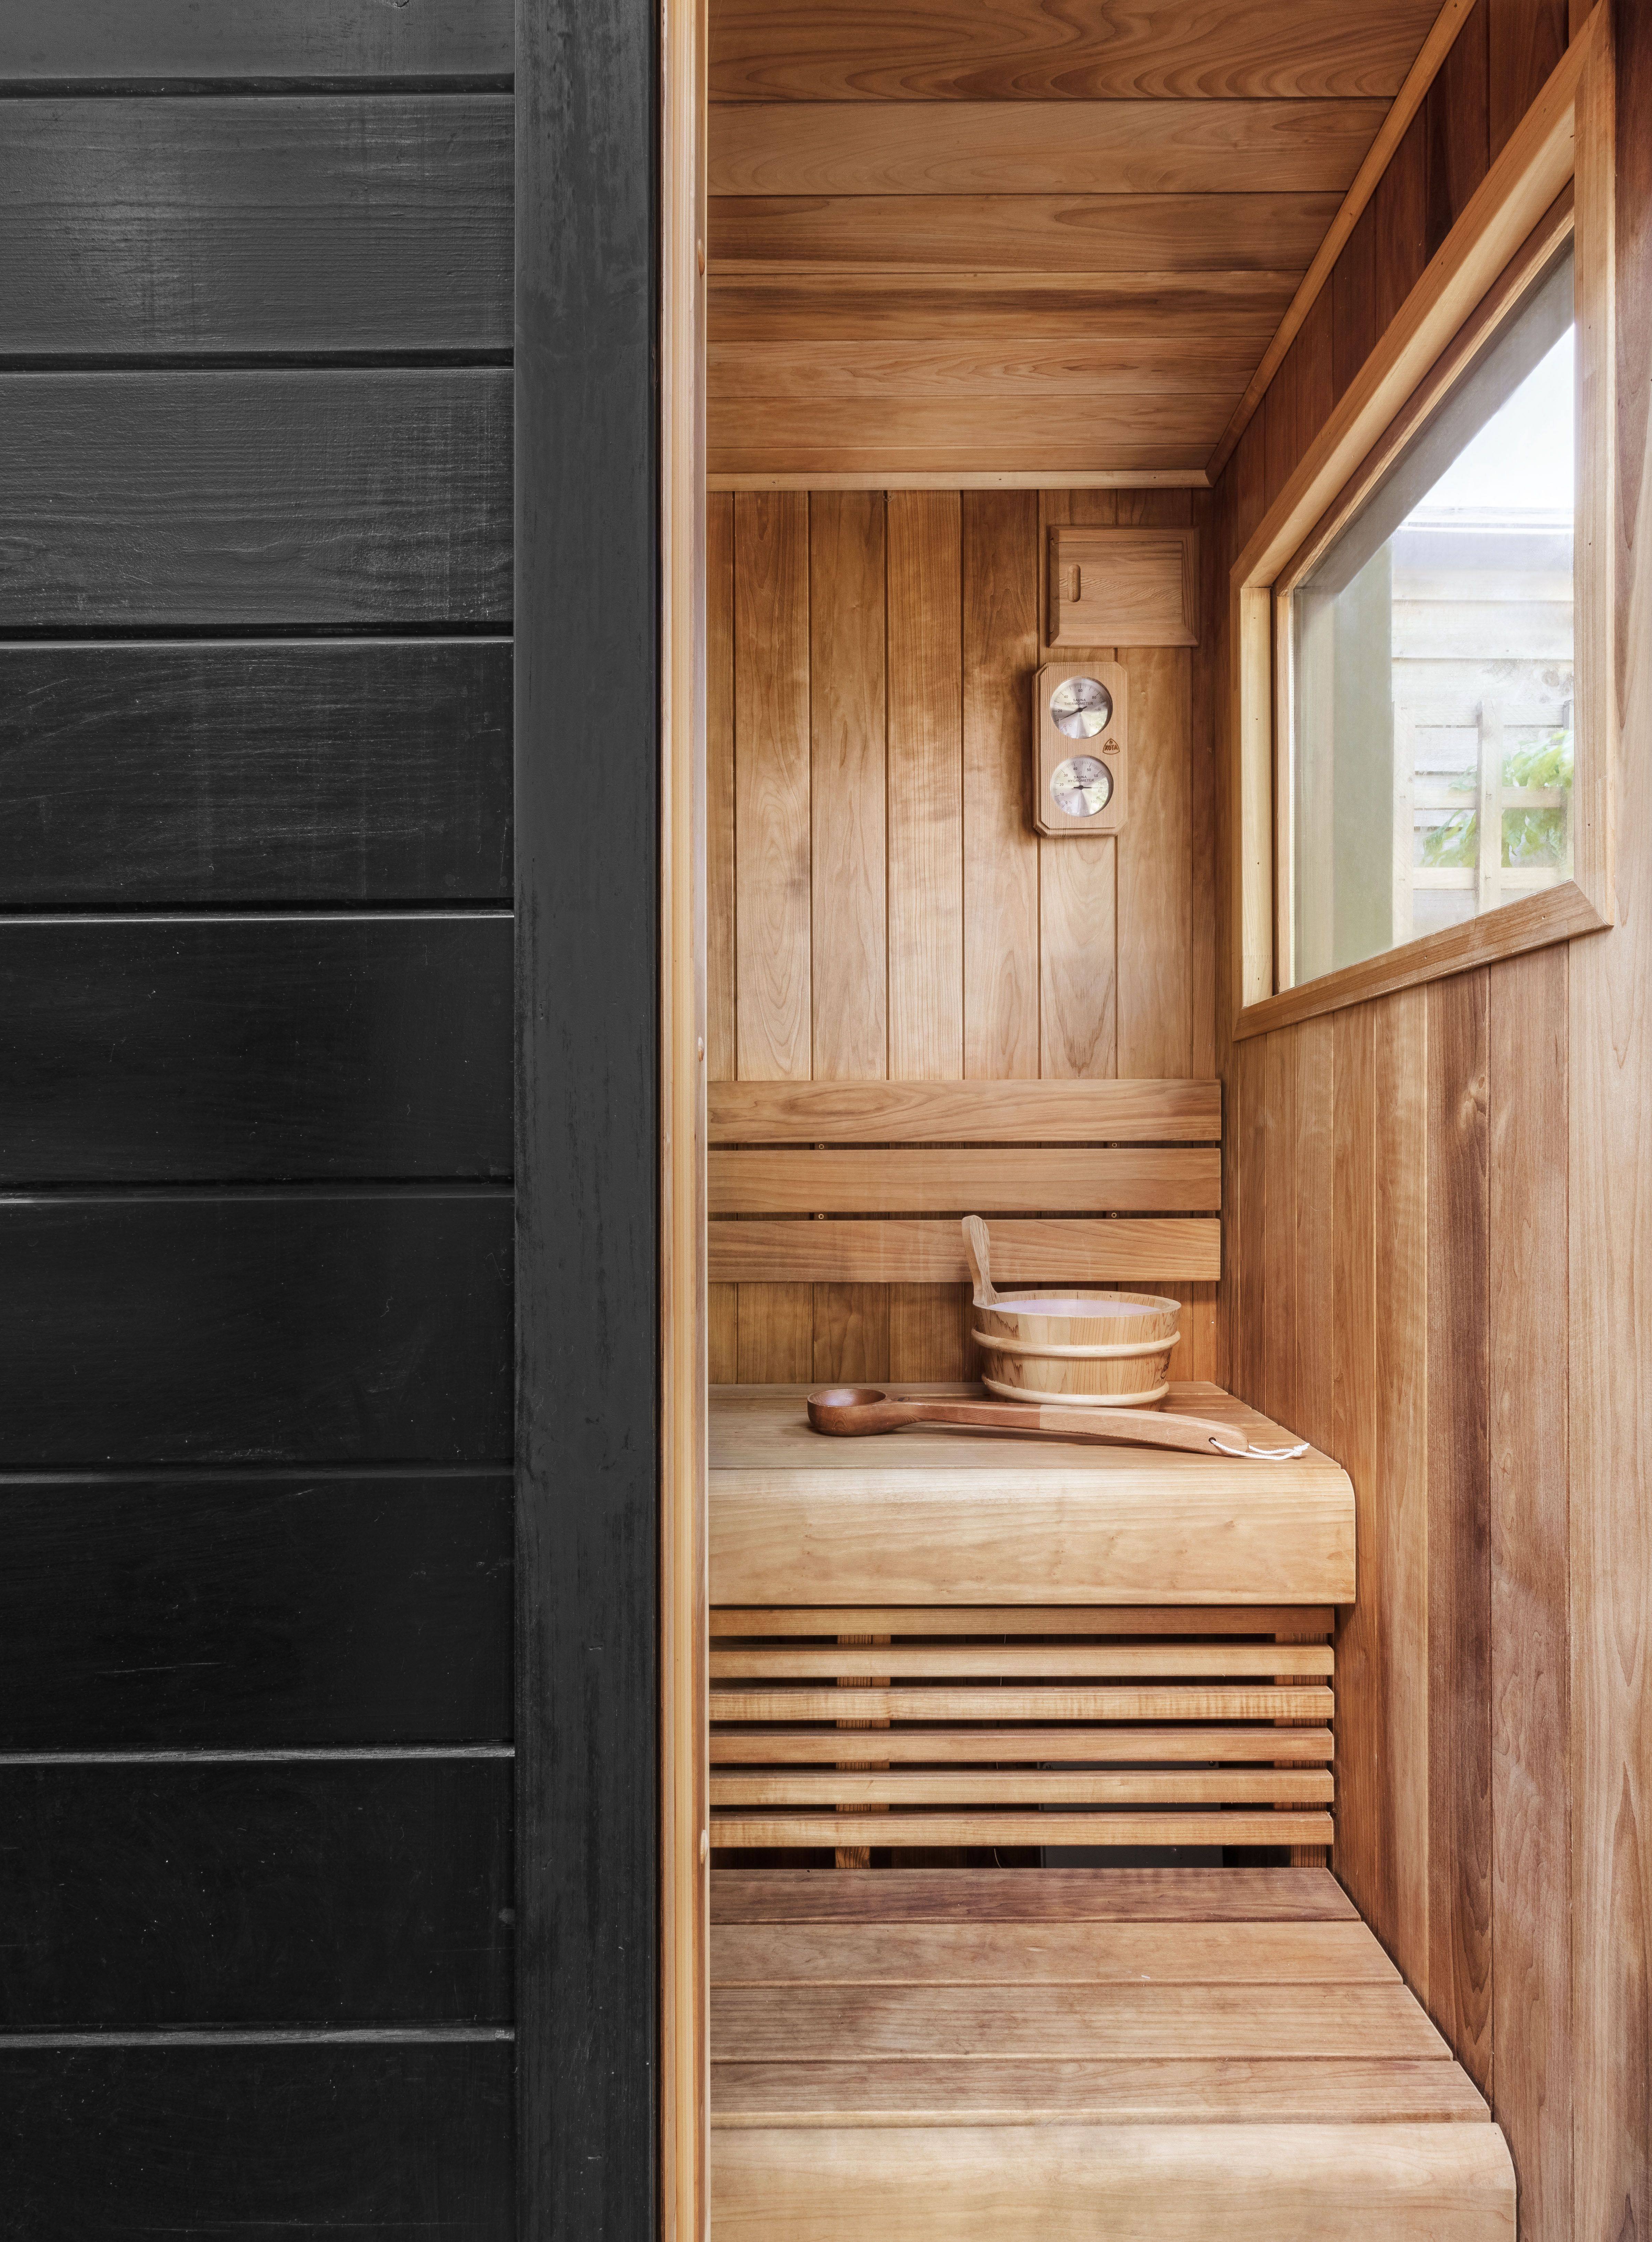 9 Home Sauna Ideas And Tips From Designers